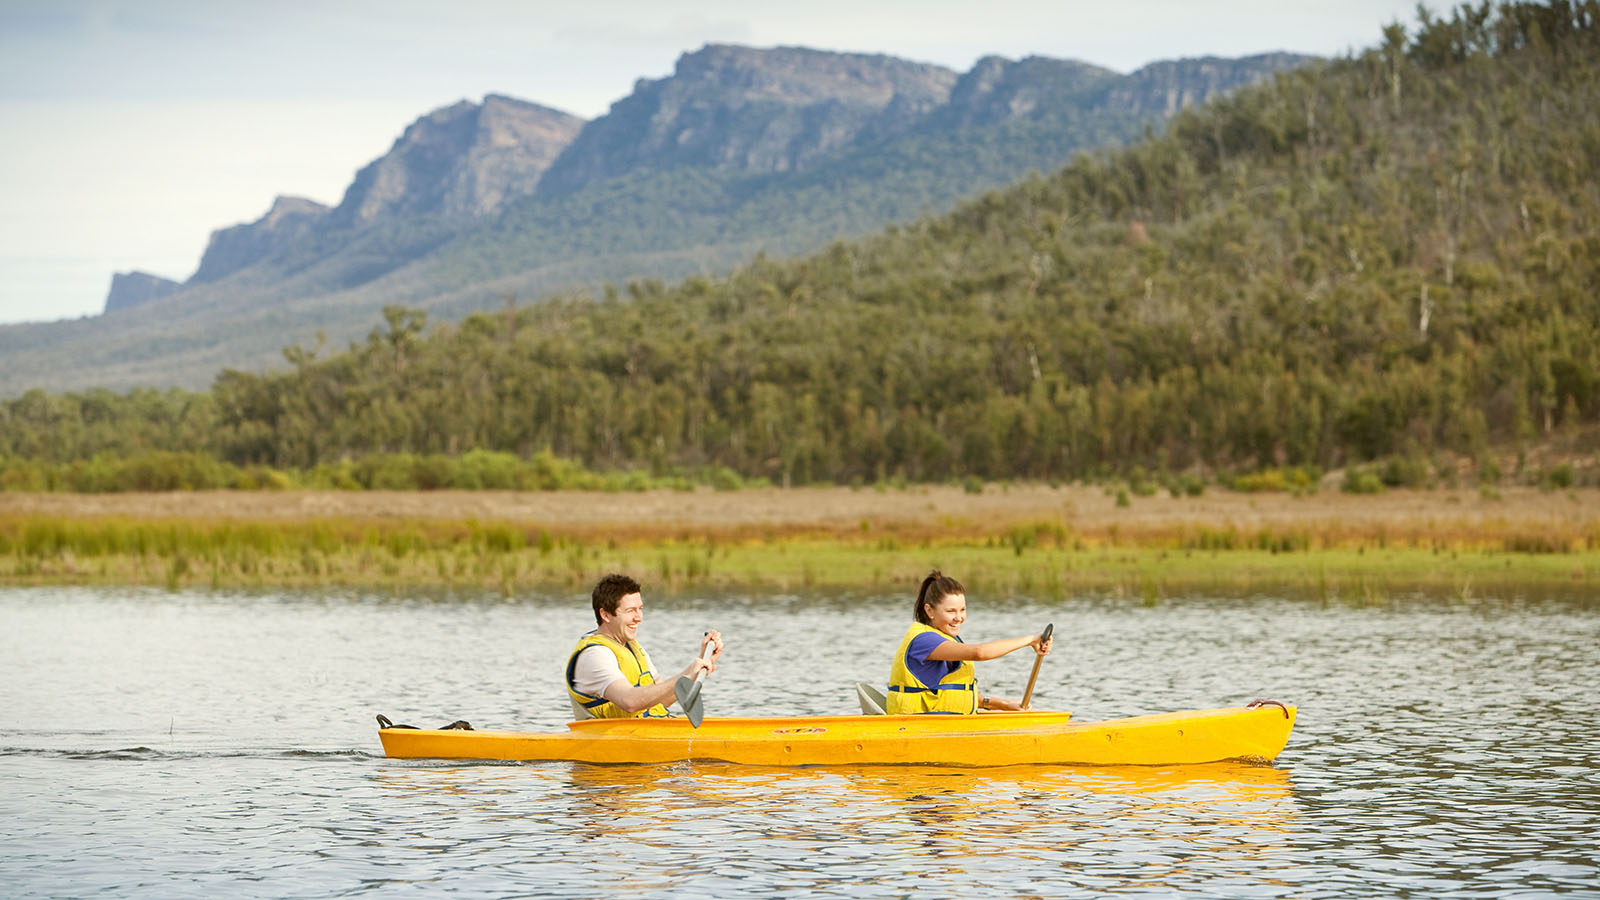 Canoeing at Lake Bellfield, The Grampians, Victoria, Australia